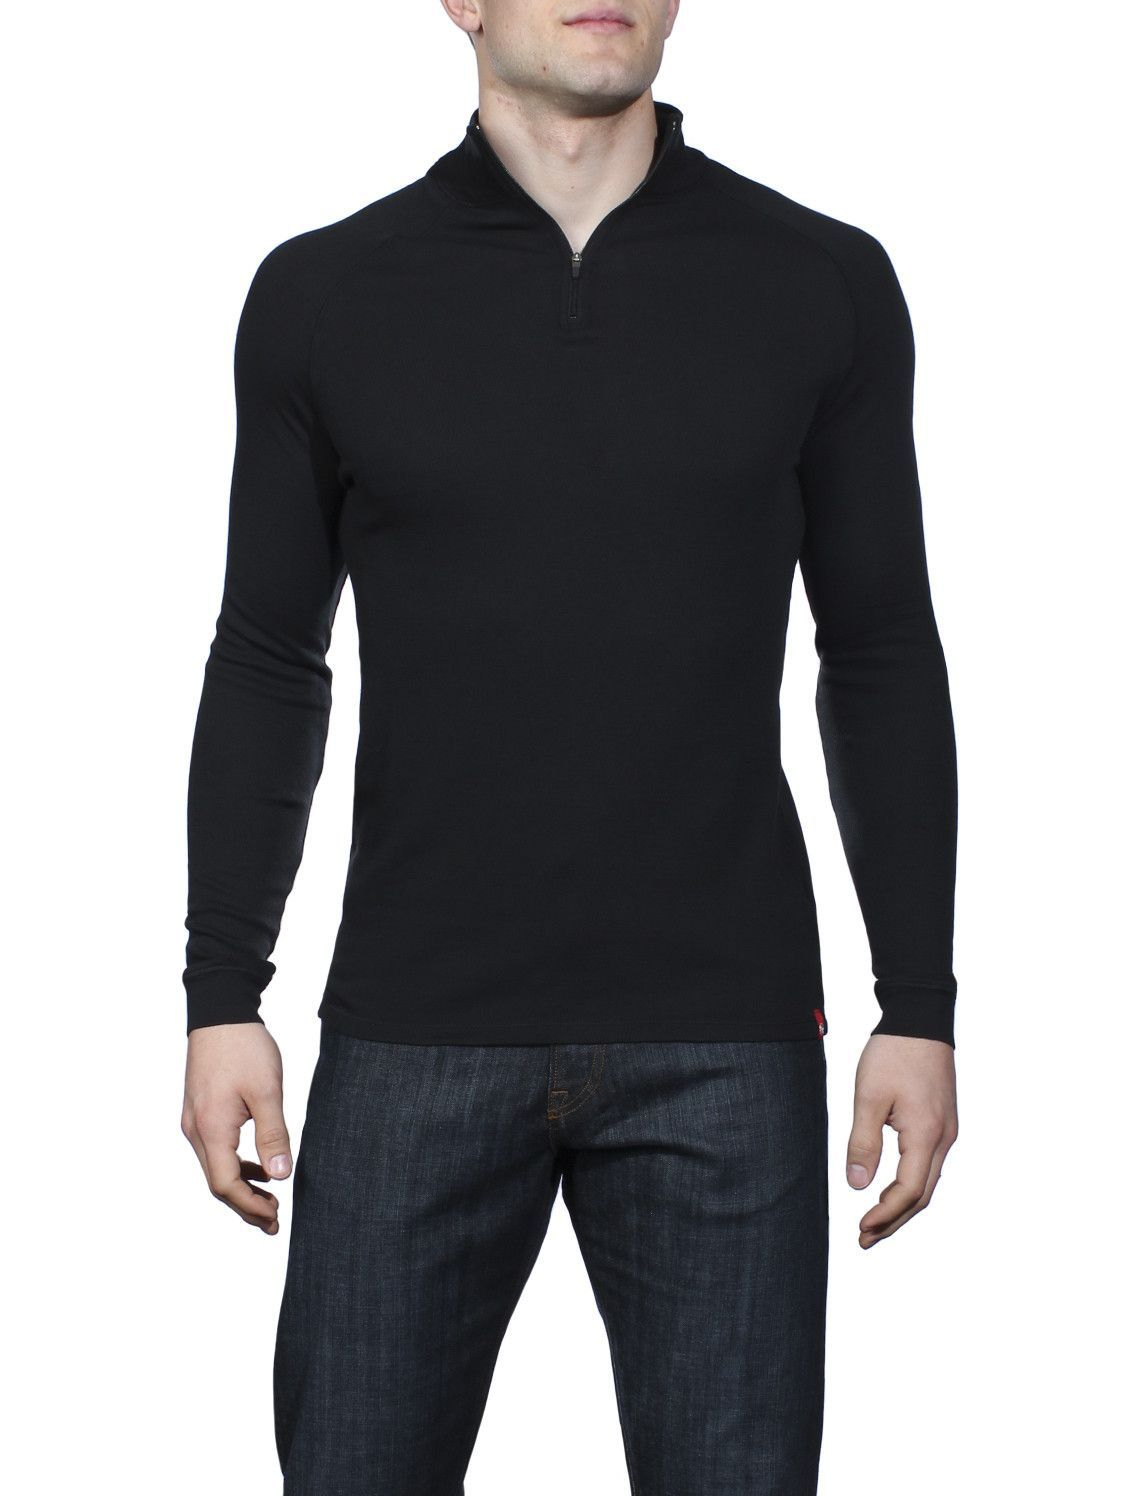 Agave Matney Supima Thermal Zip Mock Neck Sweater